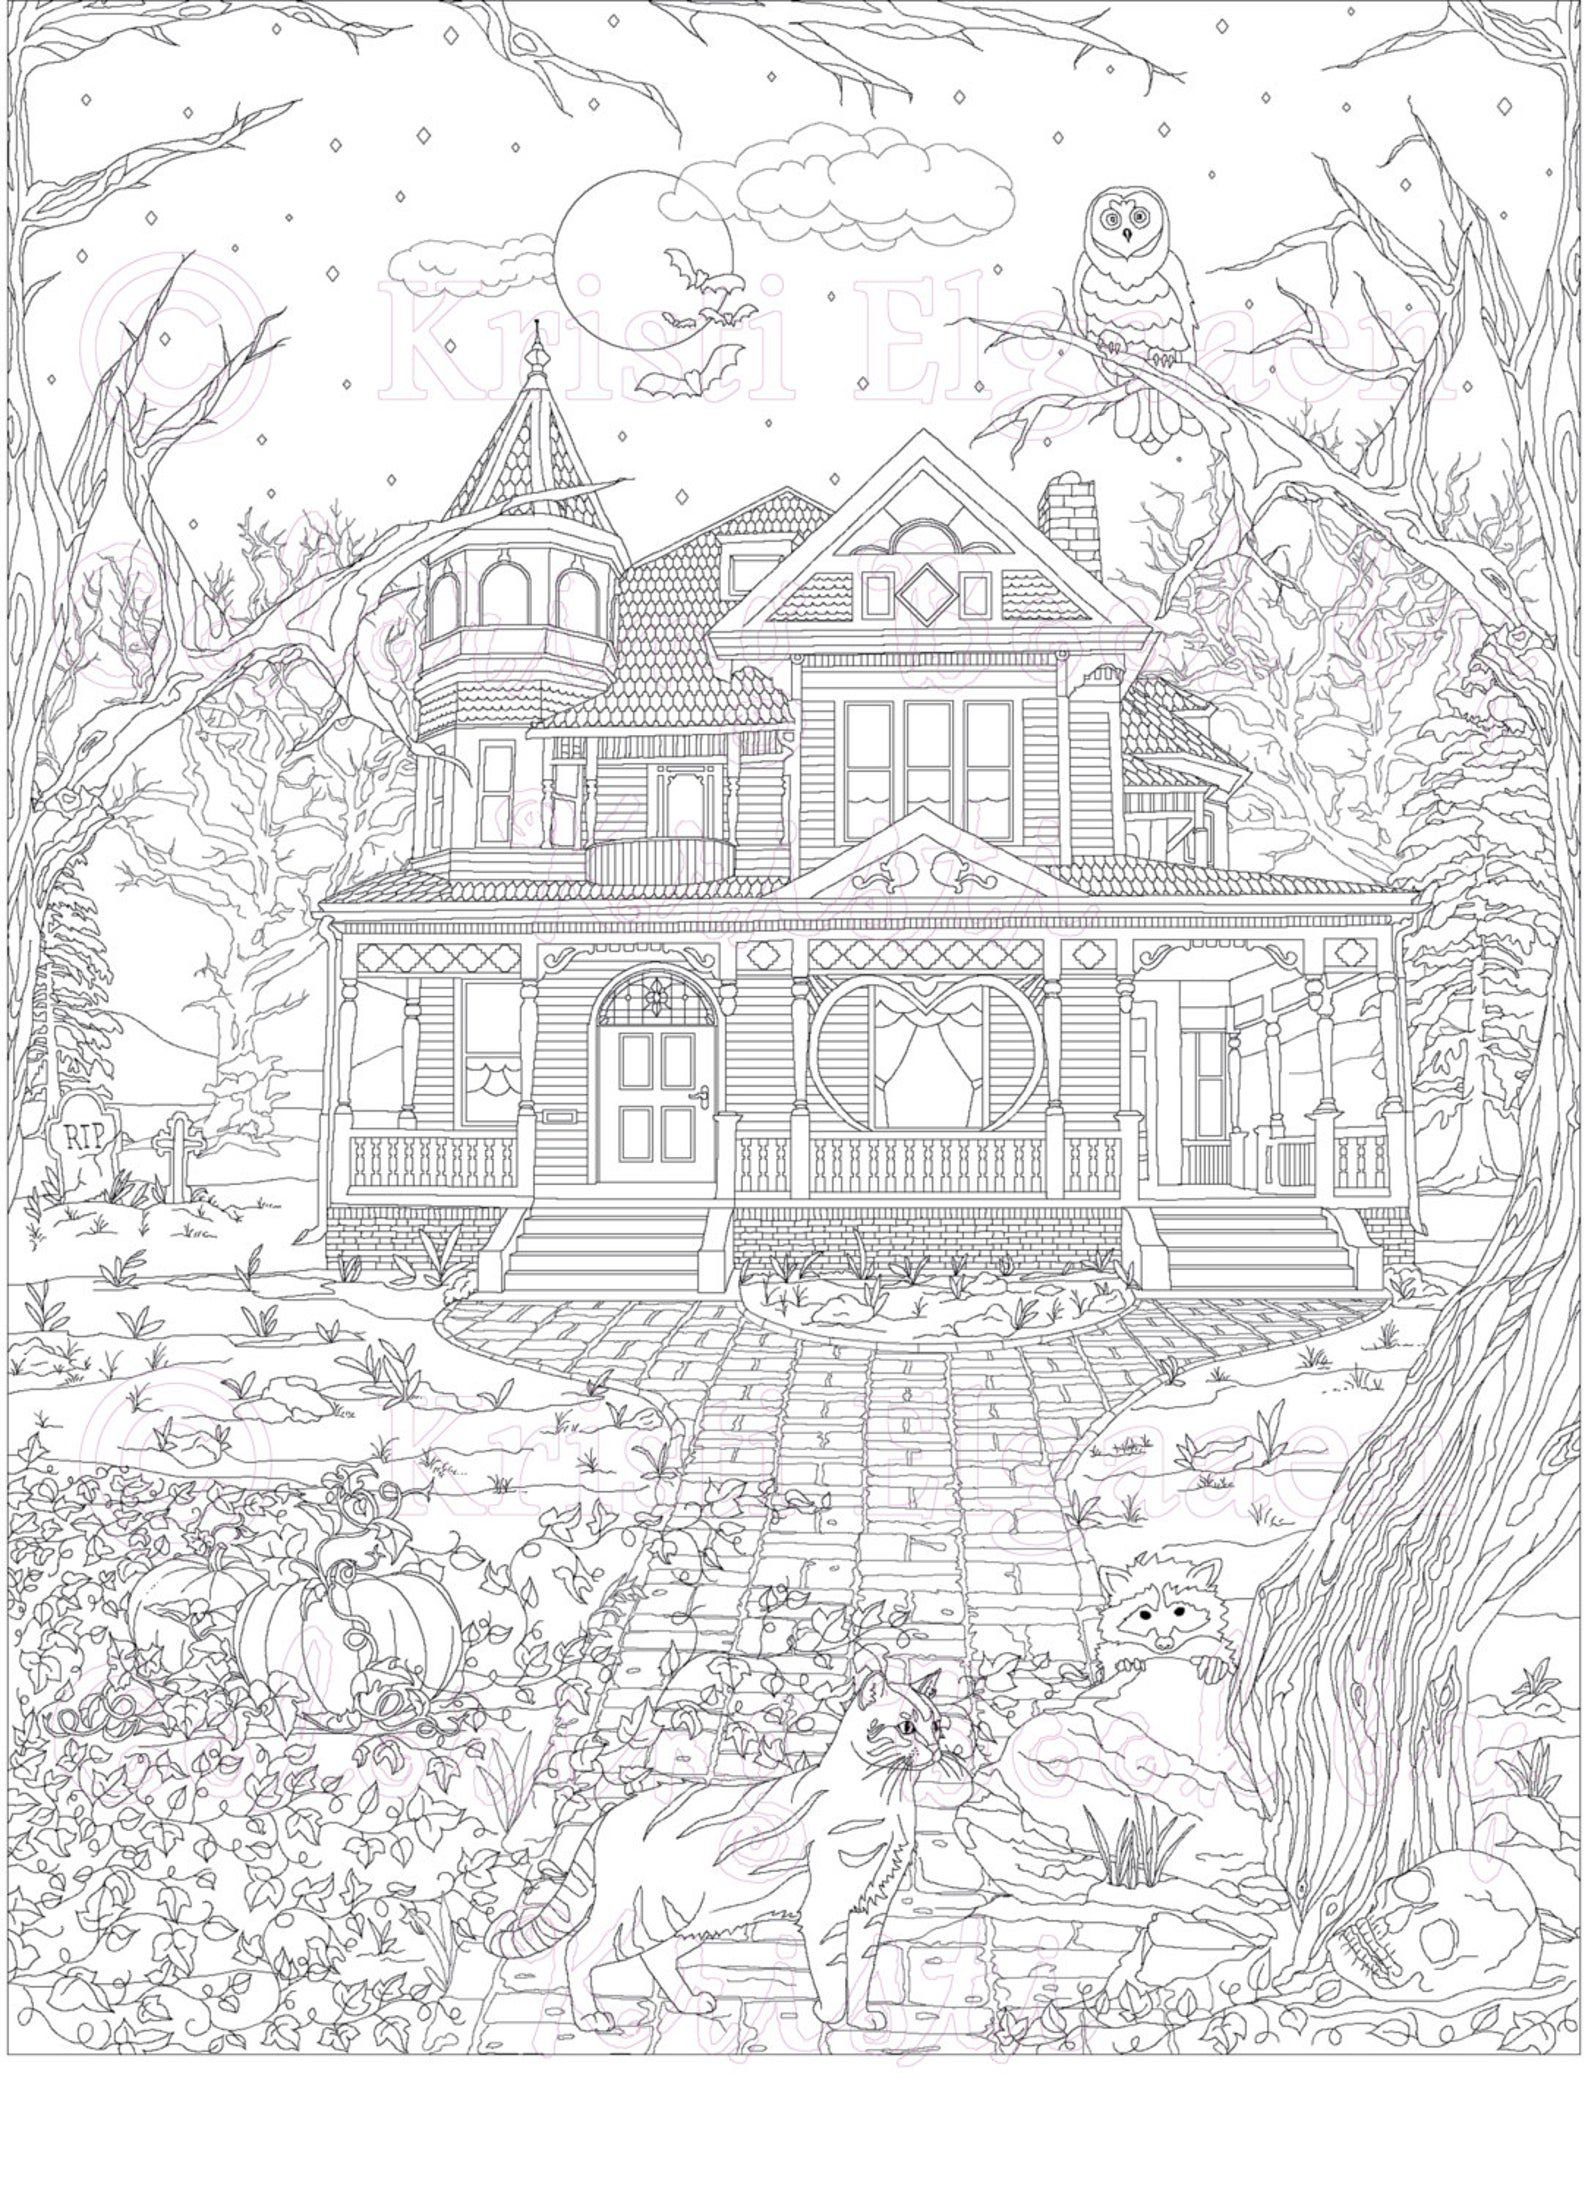 coloring book design of a Victorian mansion with cats and raccoons outside